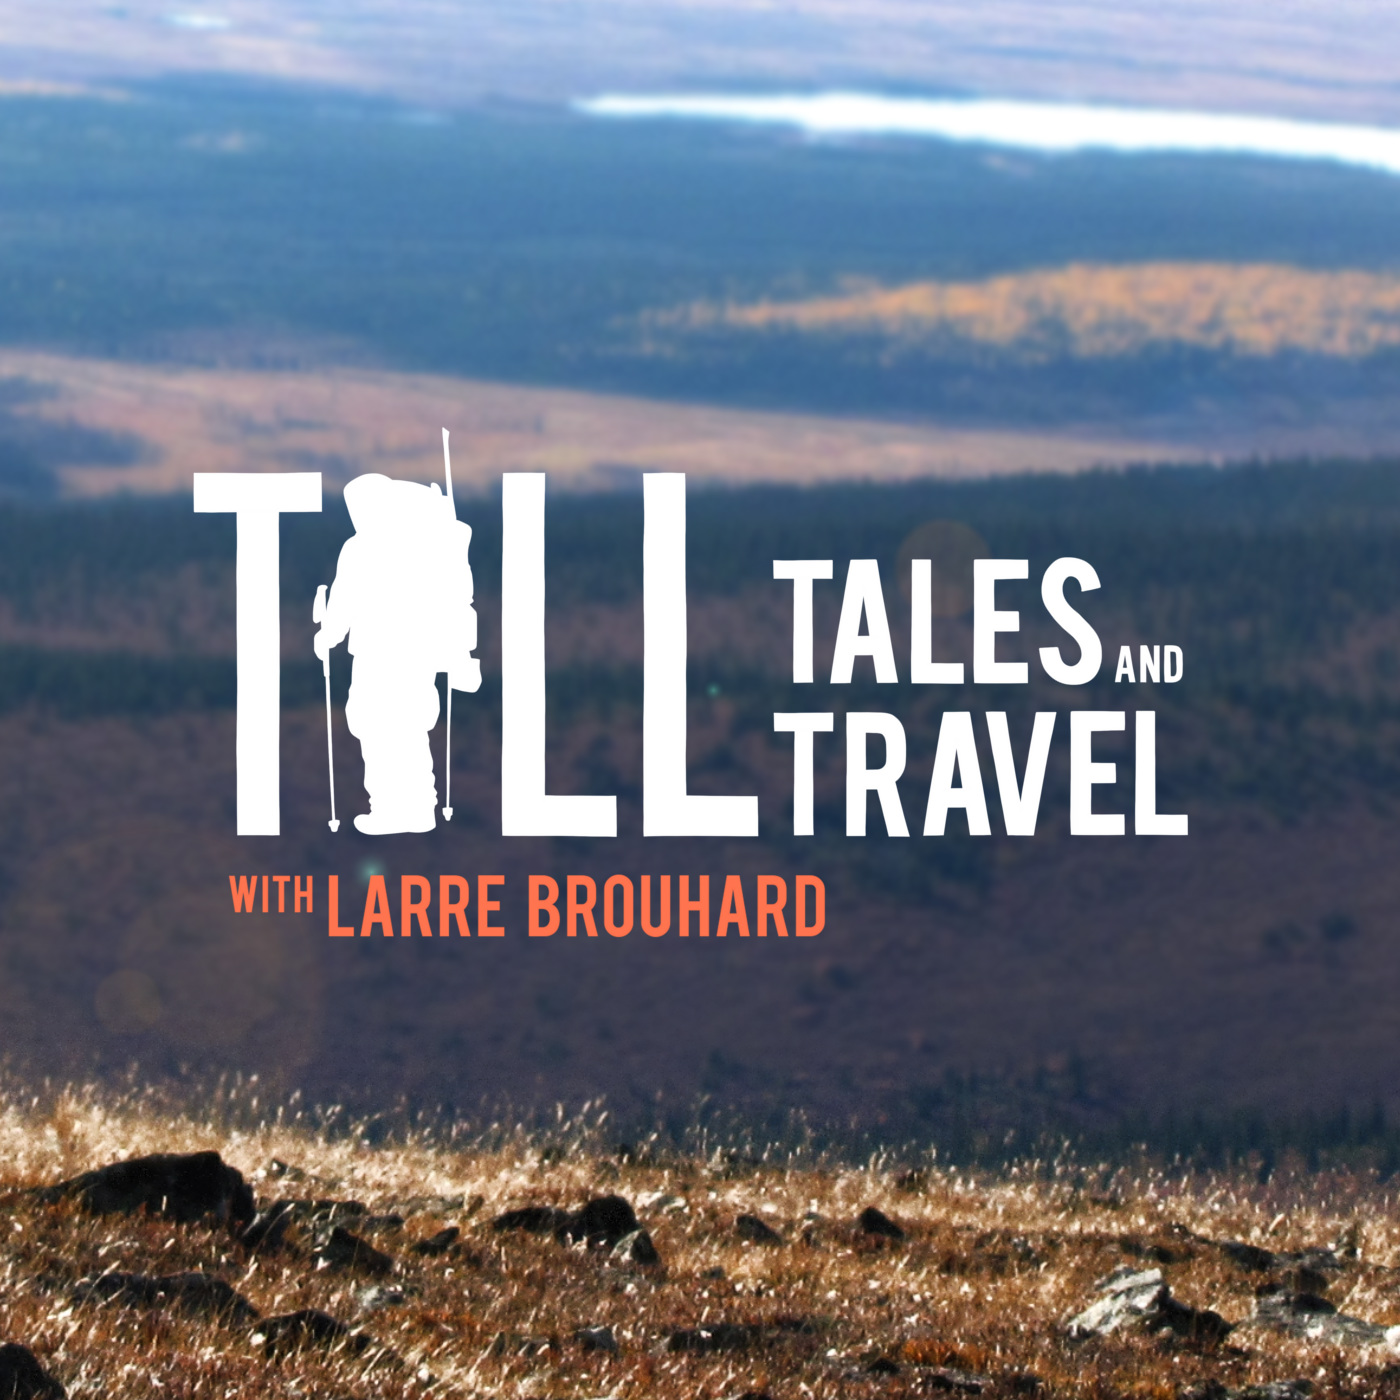 tall-tales-and-travel-logo